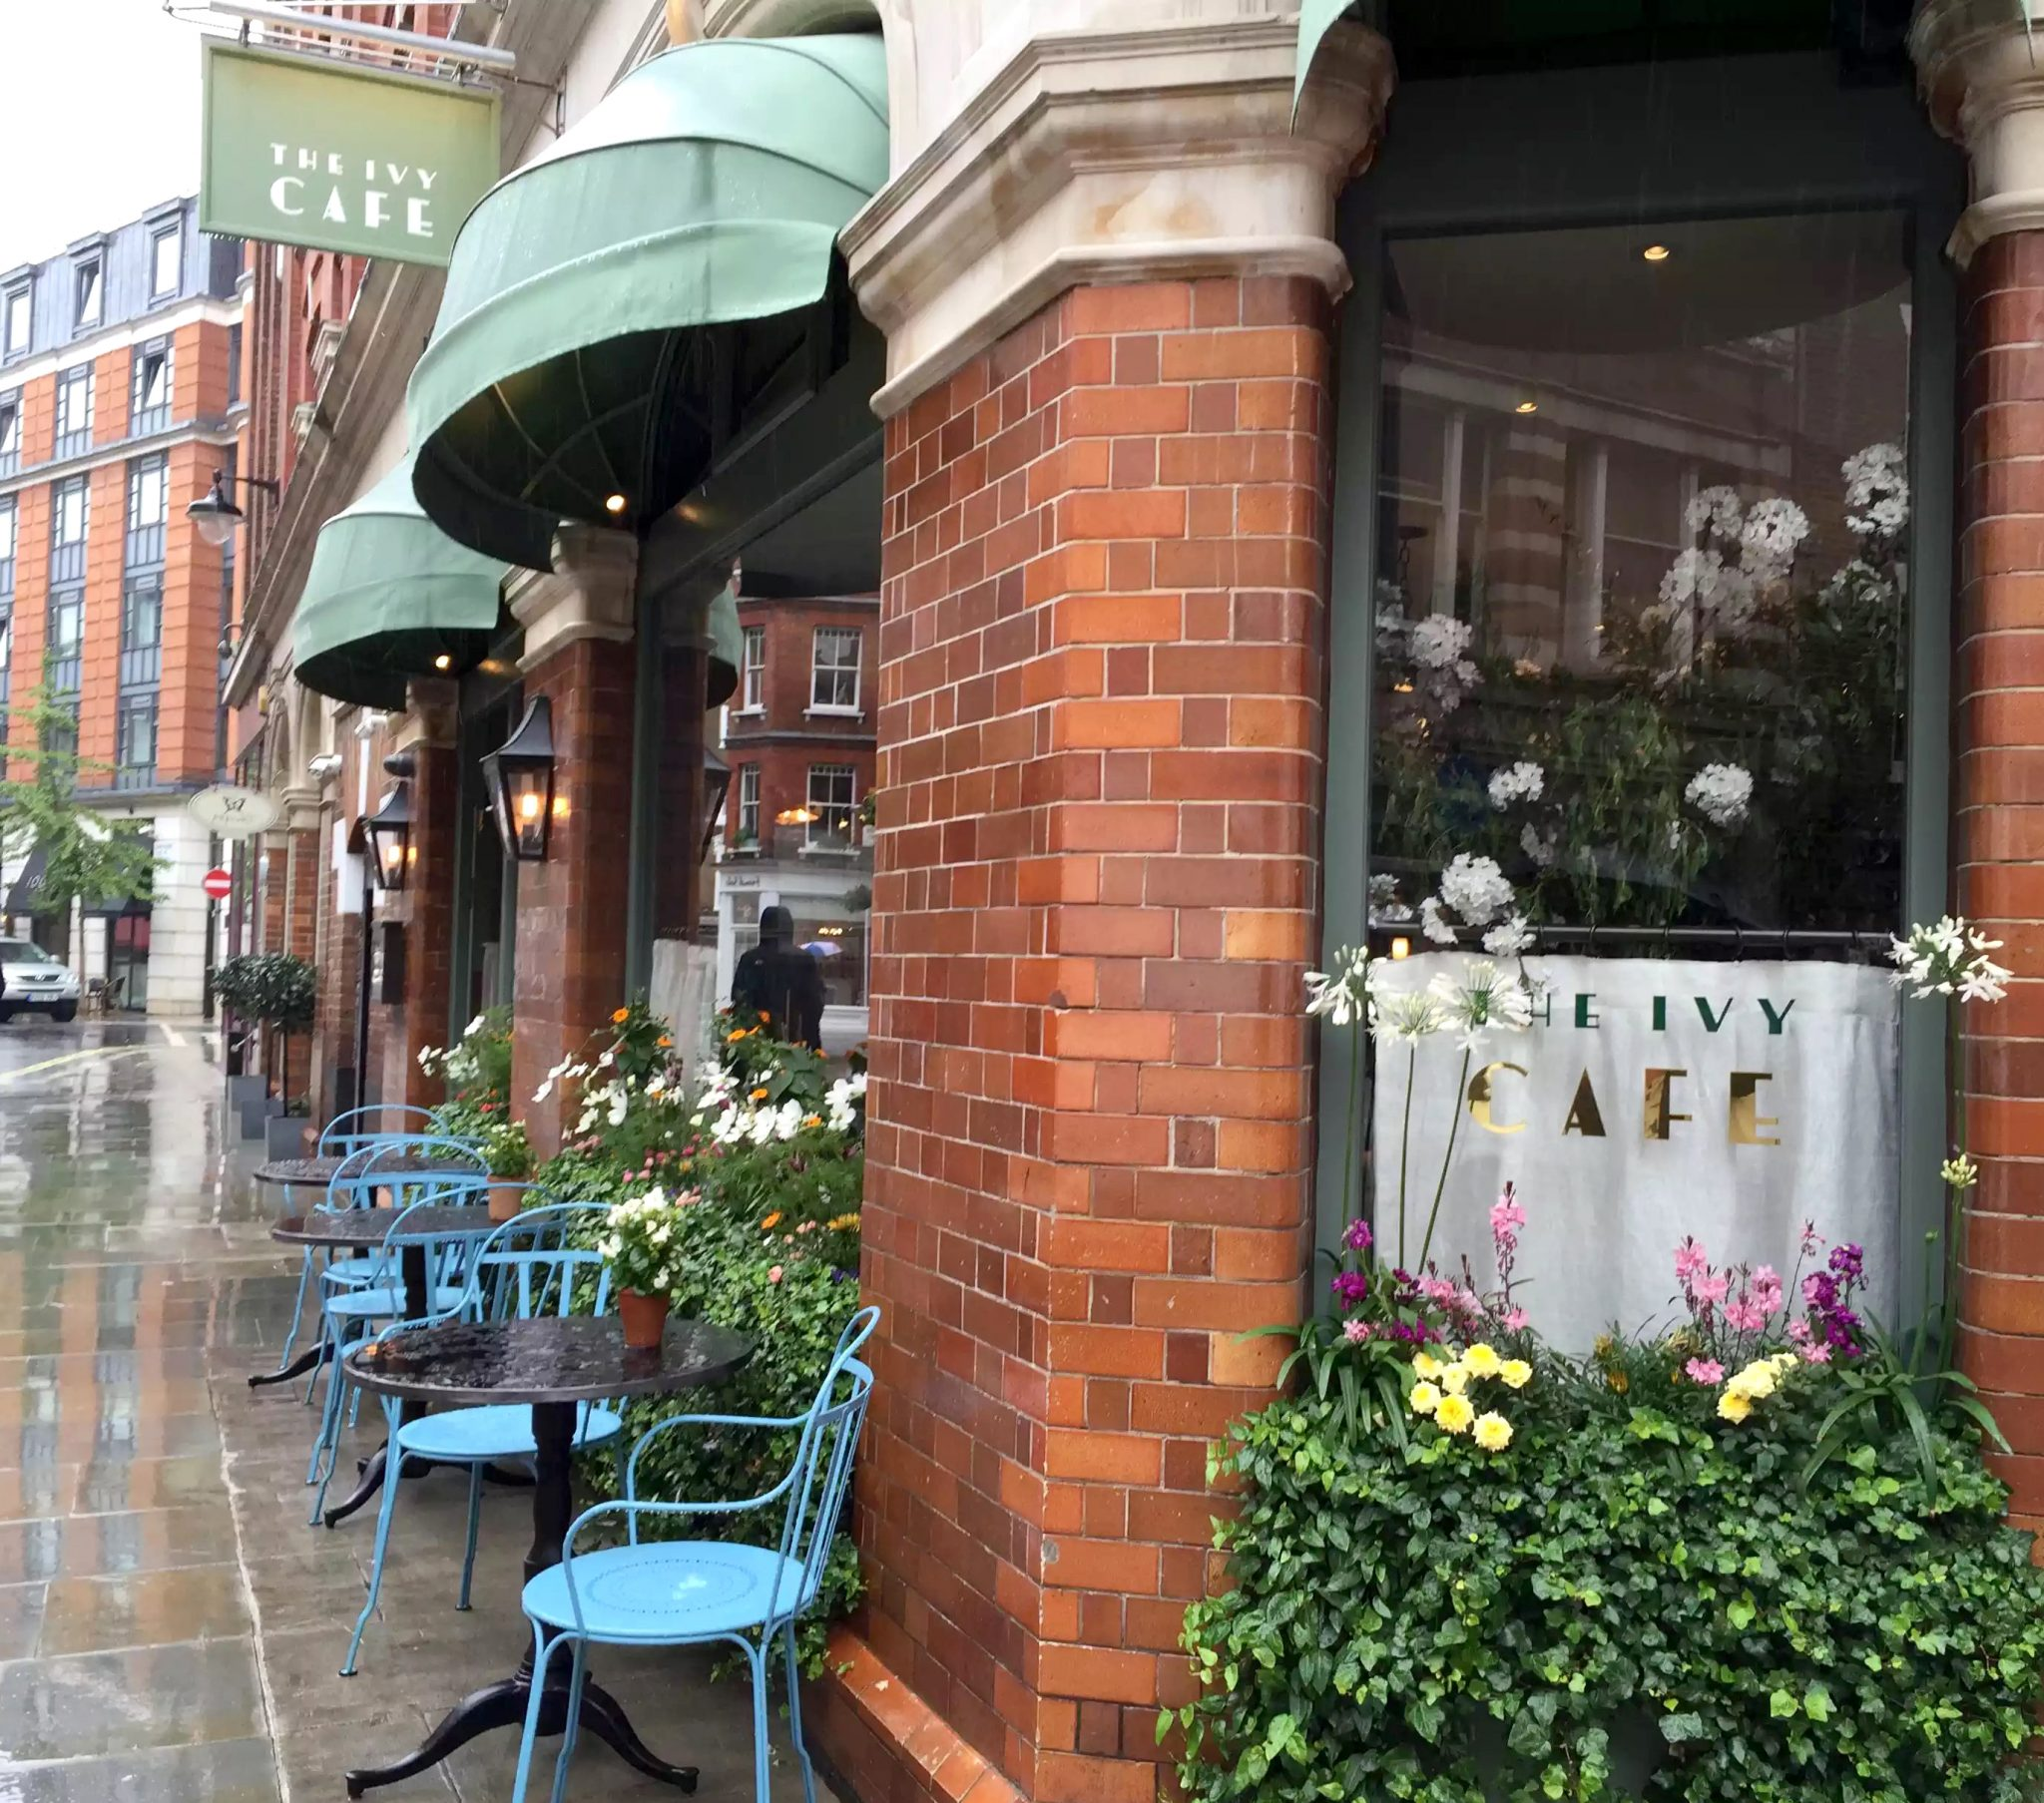 Ivy Cafe Restaurant Review Marylebone London Lunch Exterior